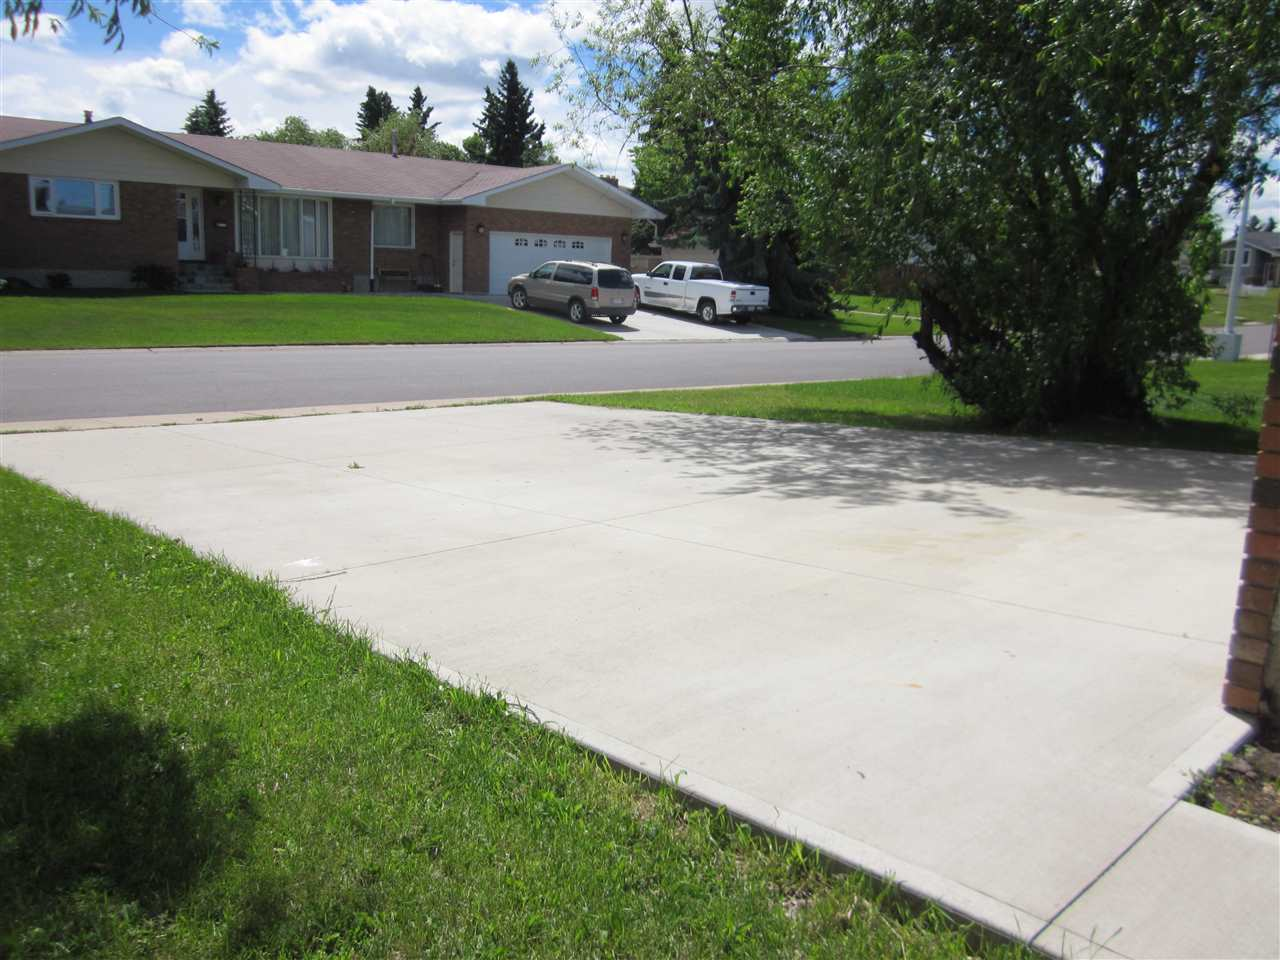 Newer driveway approximately 8 to 10 years old.